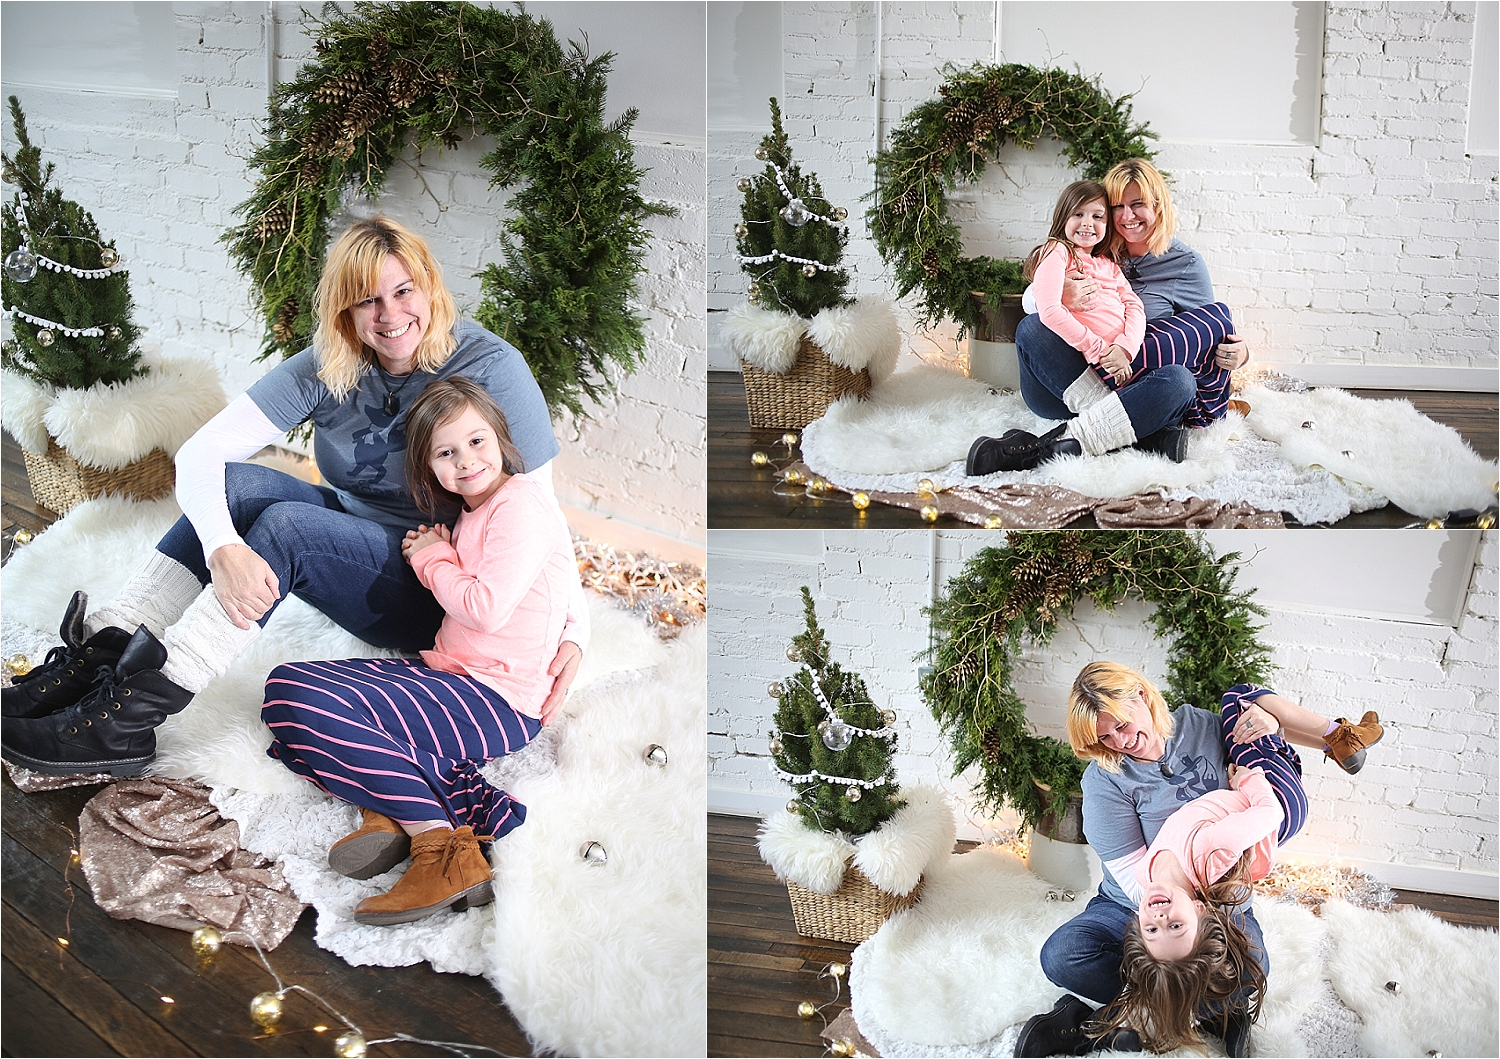 Blacksburg-Family-Photographer-Christmas-Photos_0006.jpg